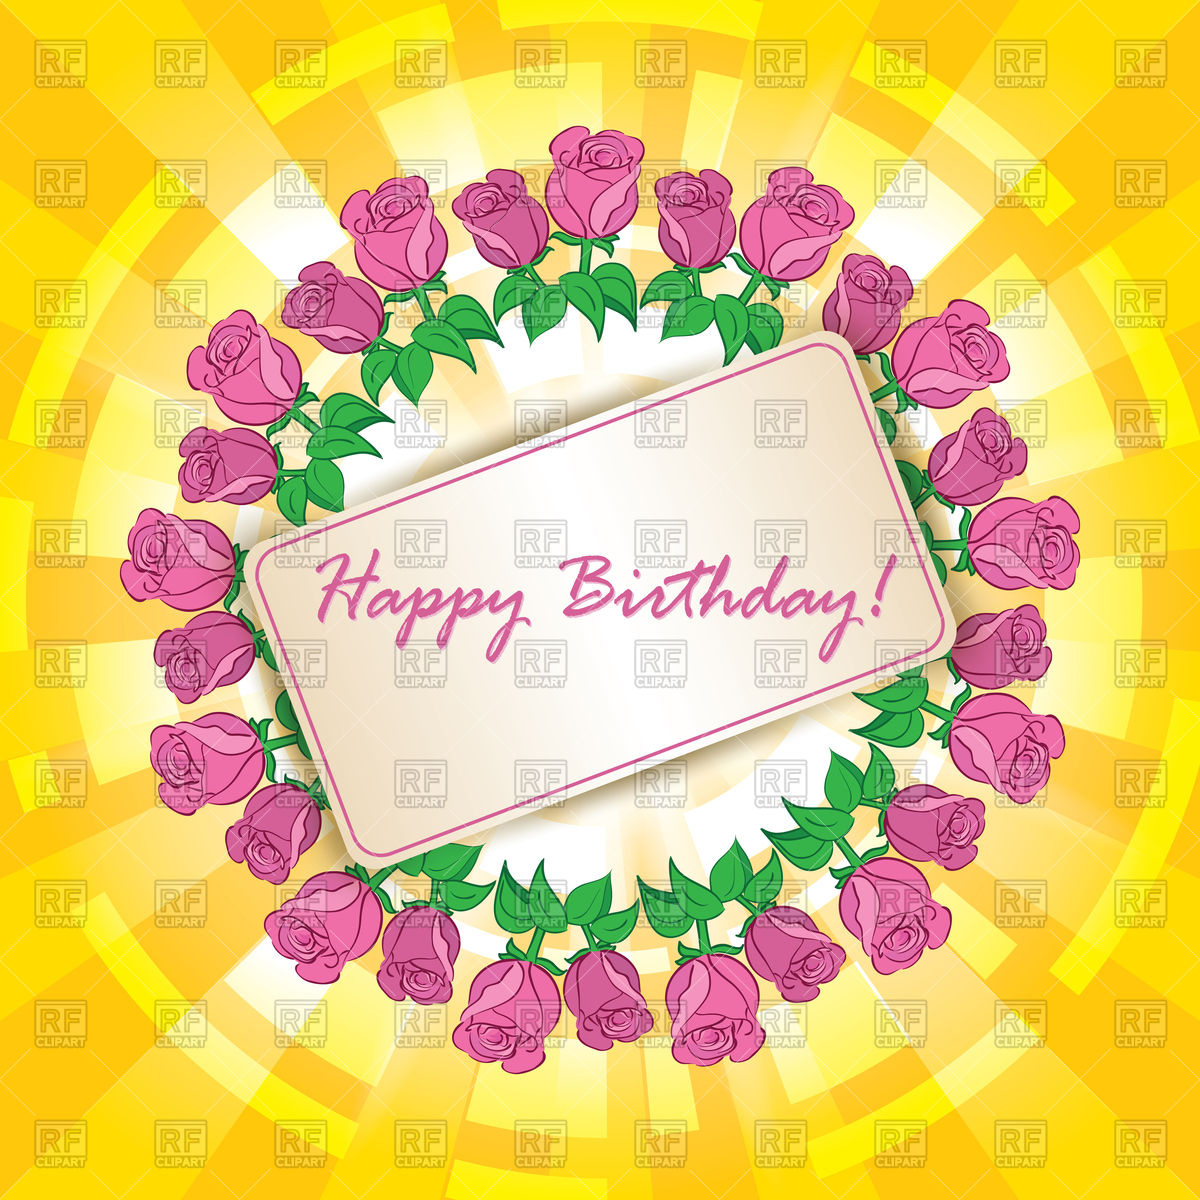 free clipart birthday greetings ; happy-birthday-greeting-card-with-frame-of-roses-Download-Royalty-free-Vector-File-EPS-364221